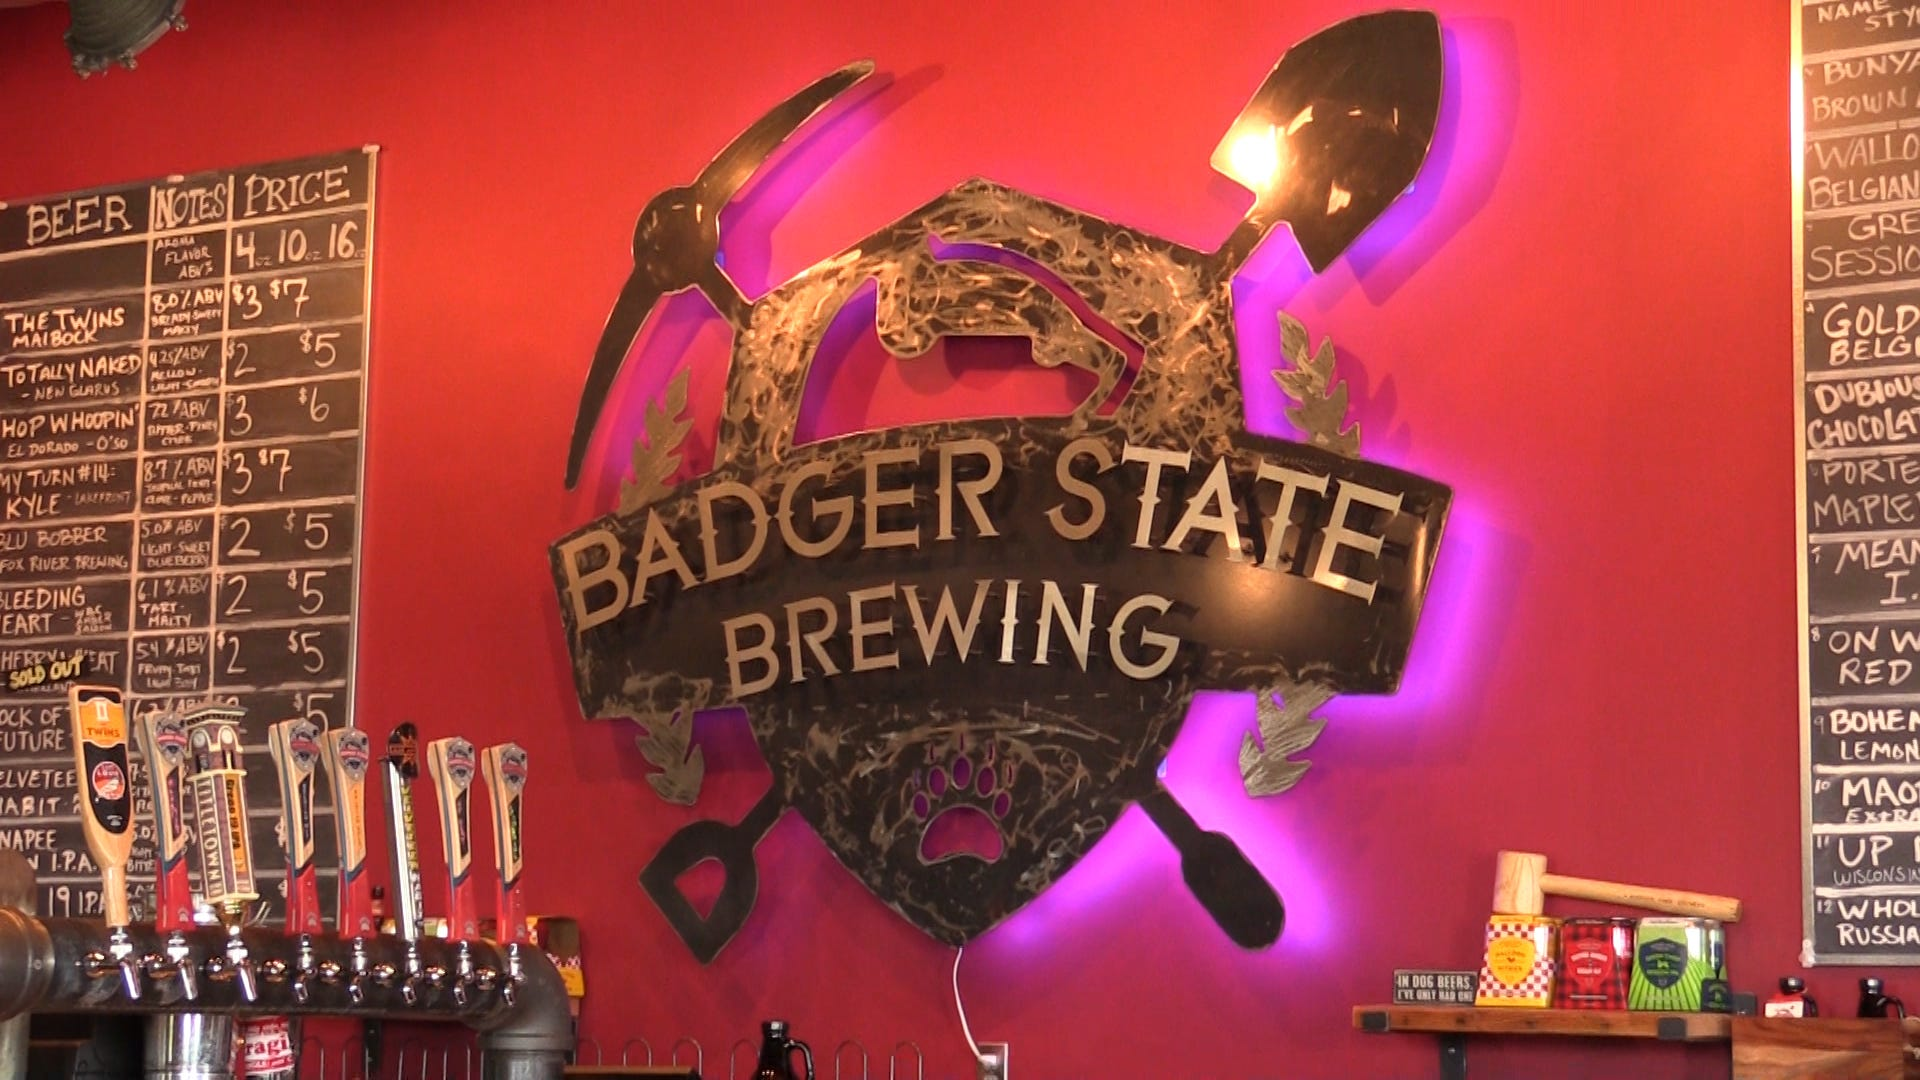 WisBrewView: Behind the scenes at Badger State Brewing